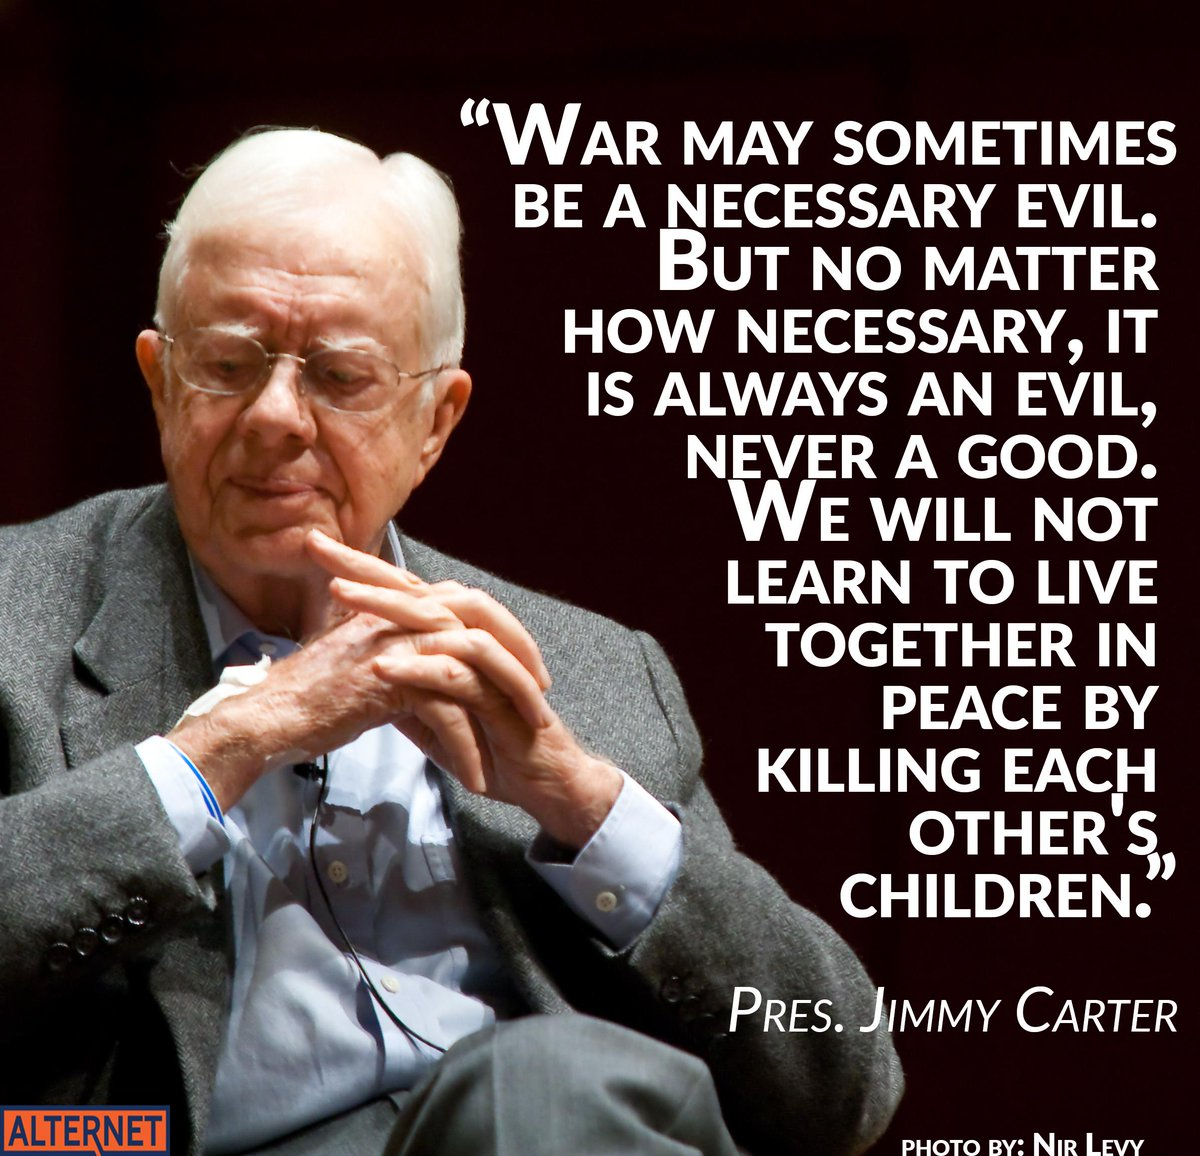 Thinking about Jimmy Carter and the Carter family today. We need his voice for #peace: #uniteblue #NoIranWar http://t.co/75oNqIXEUu